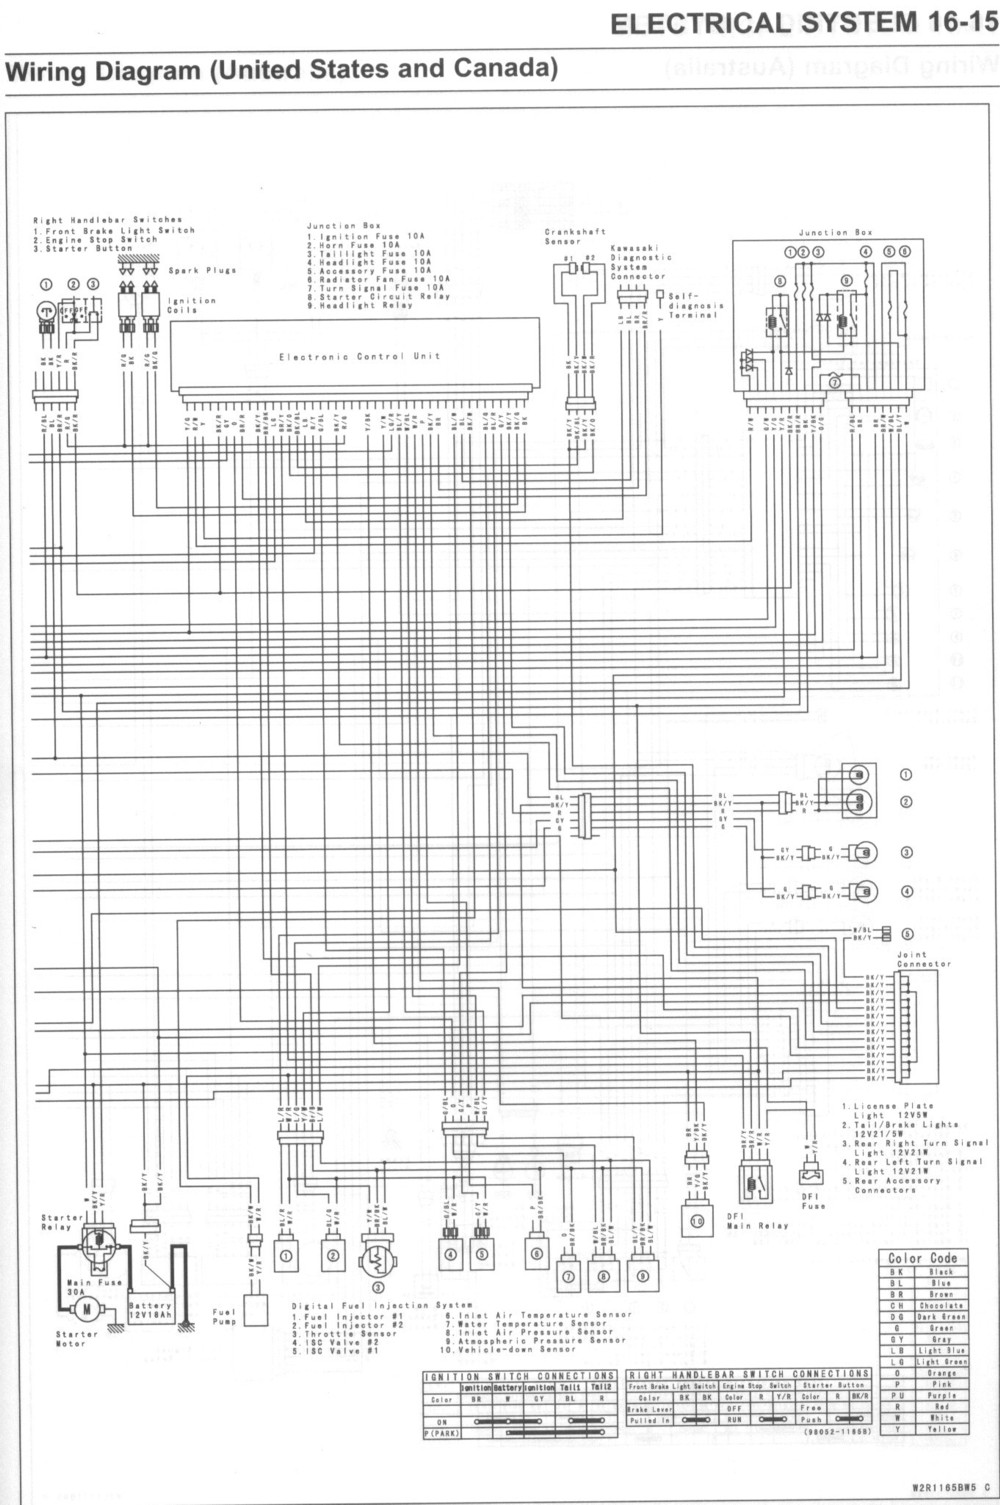 Kawasaki Vulcan 800 Wiring Diagram Enthusiast Diagrams Drifter Vn800 U2022 Rh Mdelibre Co 2001 1500